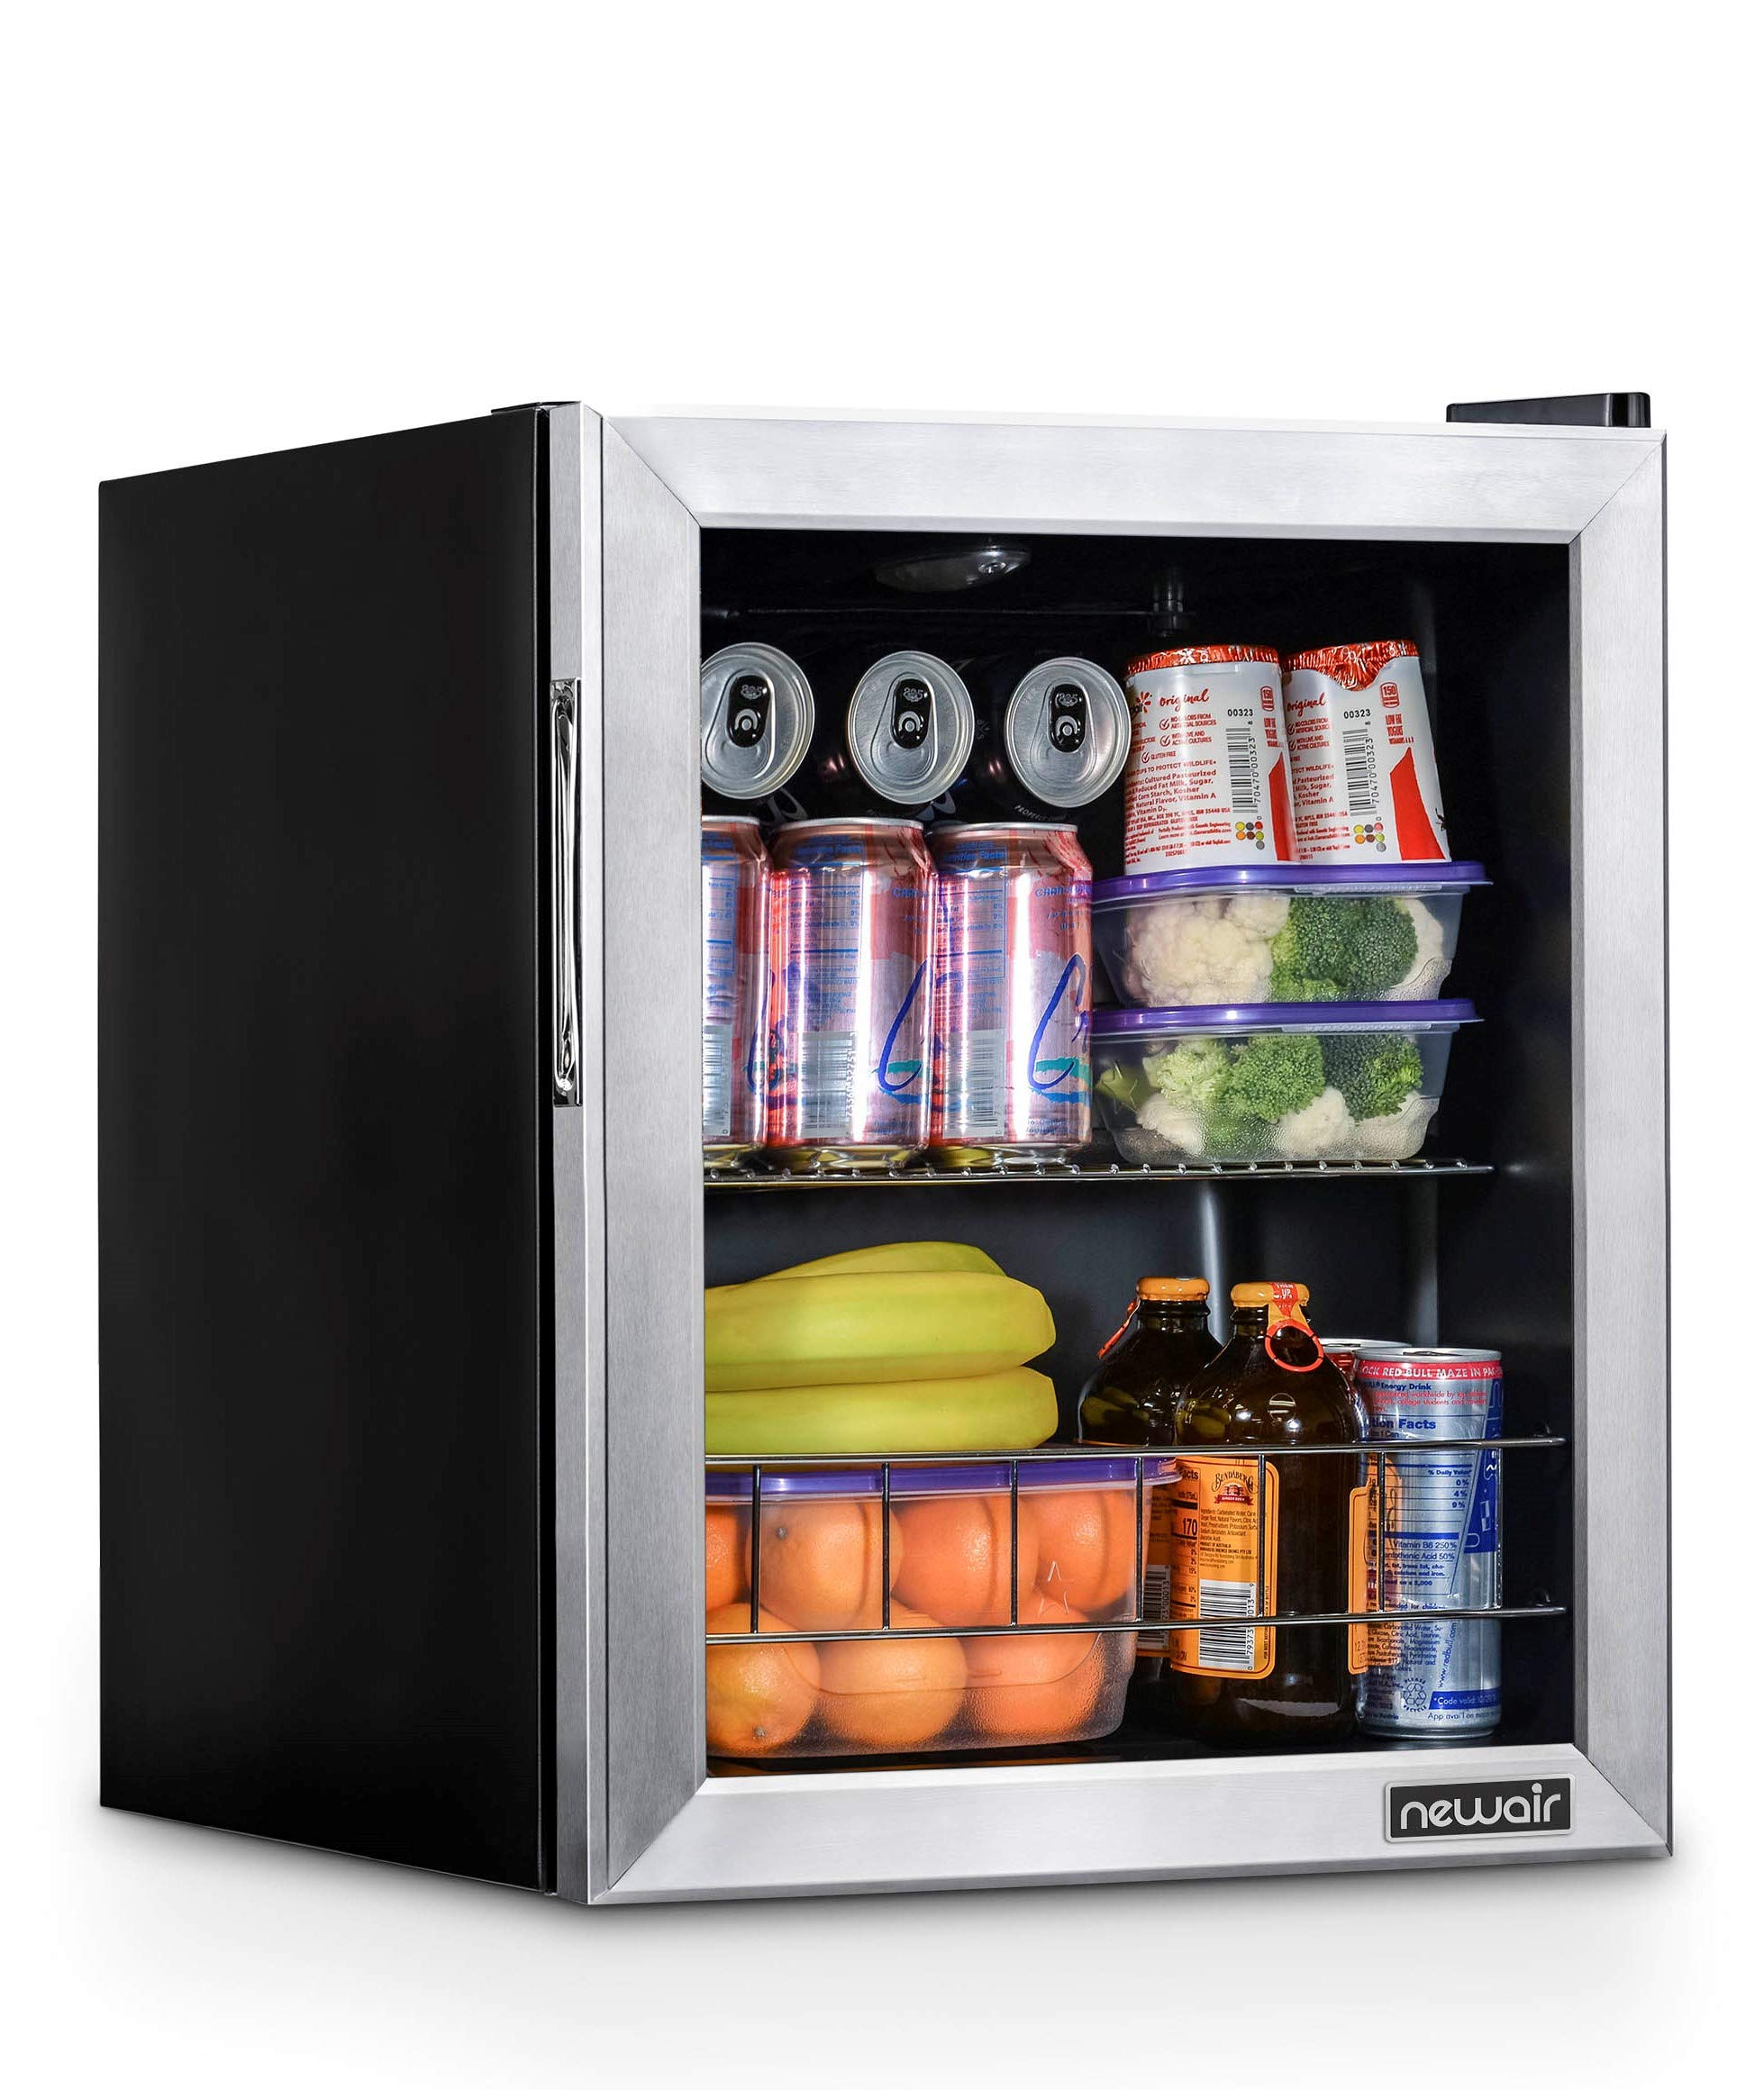 NewAir NBC060SS00 Beverage Cooler and Refrigerator, Holds up to 60 Cans, Perfect for Beer Wine or Soda by NewAir